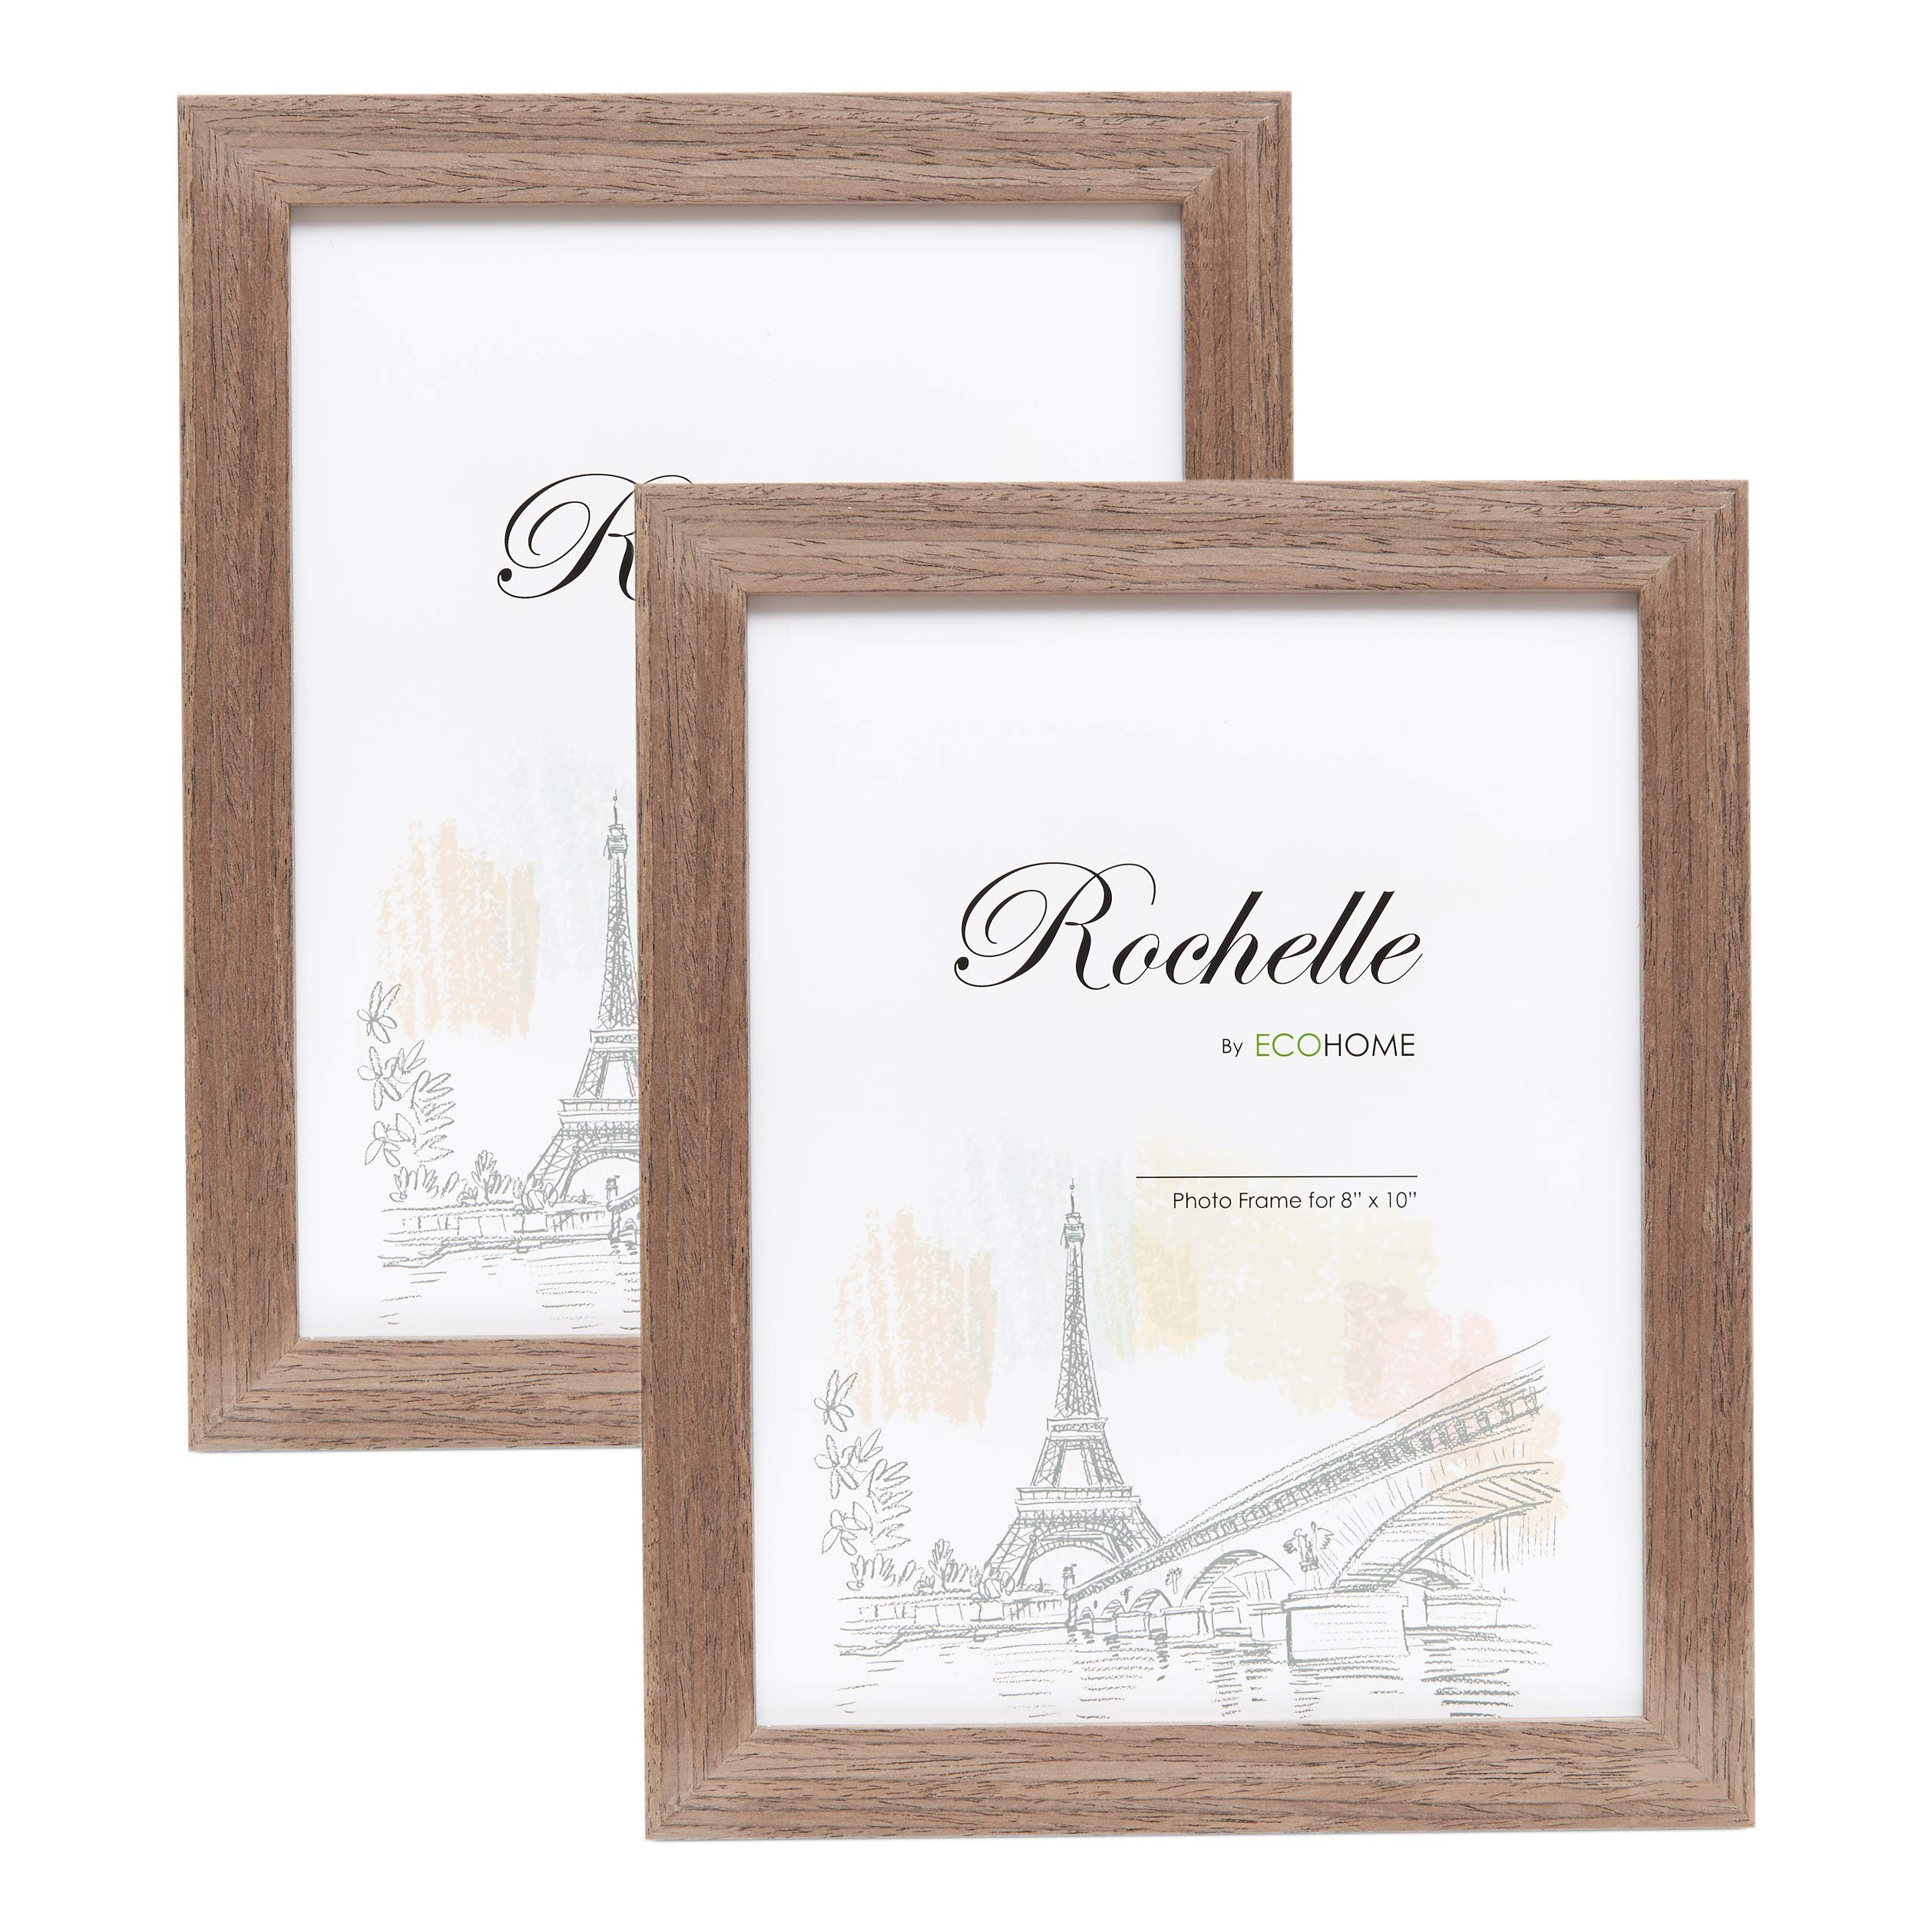 8x10 Picture Frame Walnut Wood - 2 Pack, Wall Mount Desktop Display, Frames by EcoHome by Eco-home